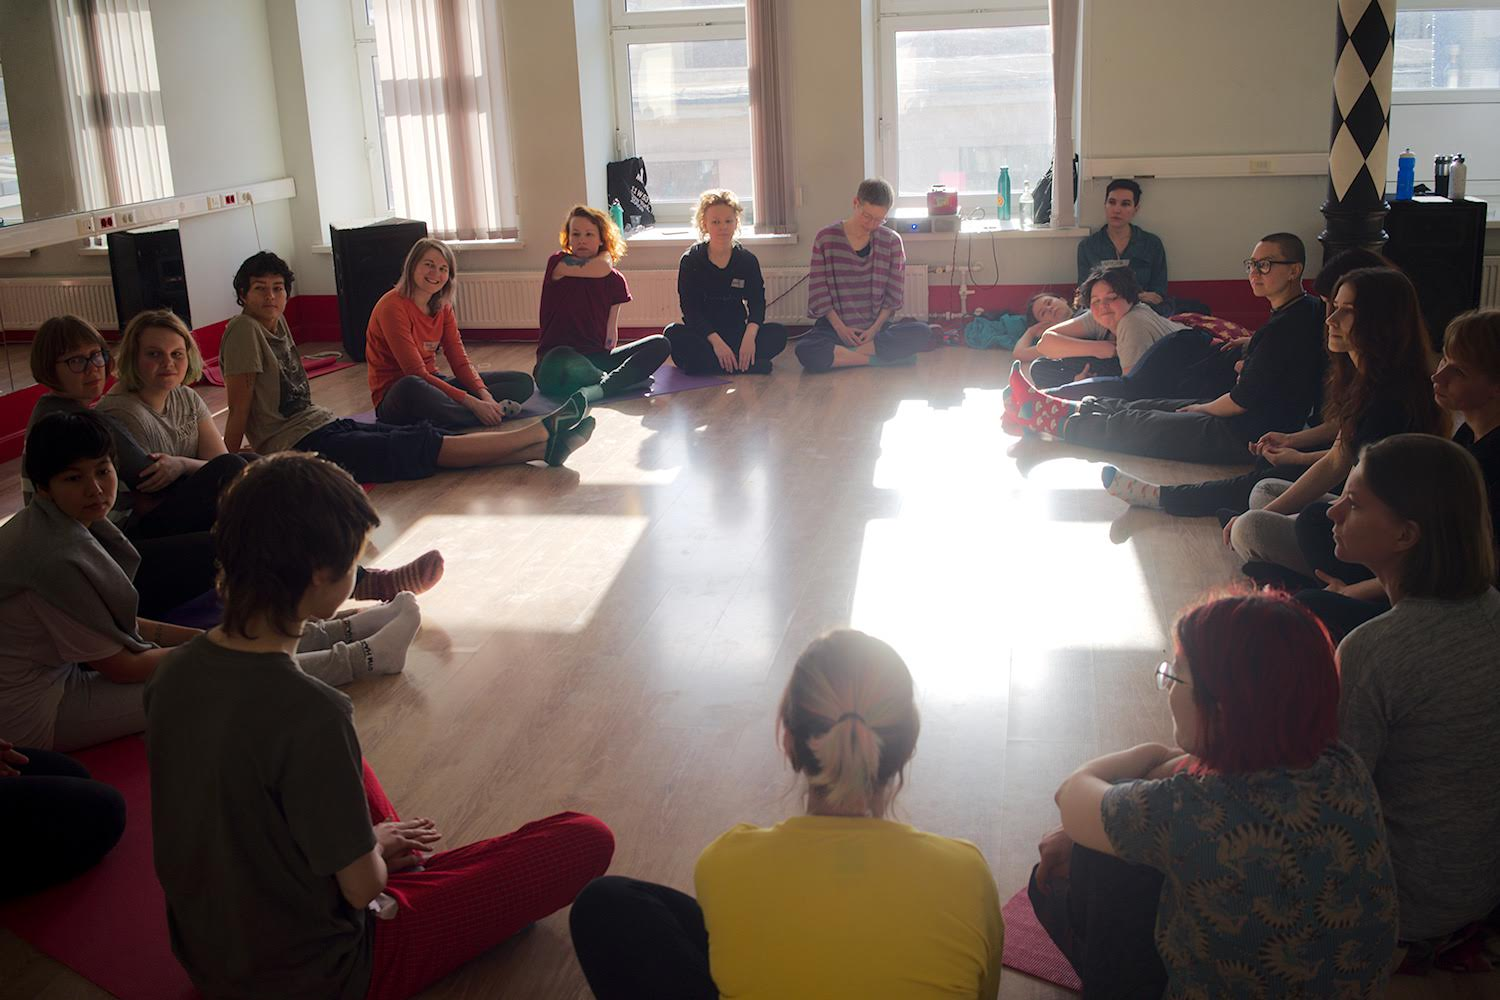 Telaboratoria ongoing classes, St. Petersburg. April 2019. Credit: Asta